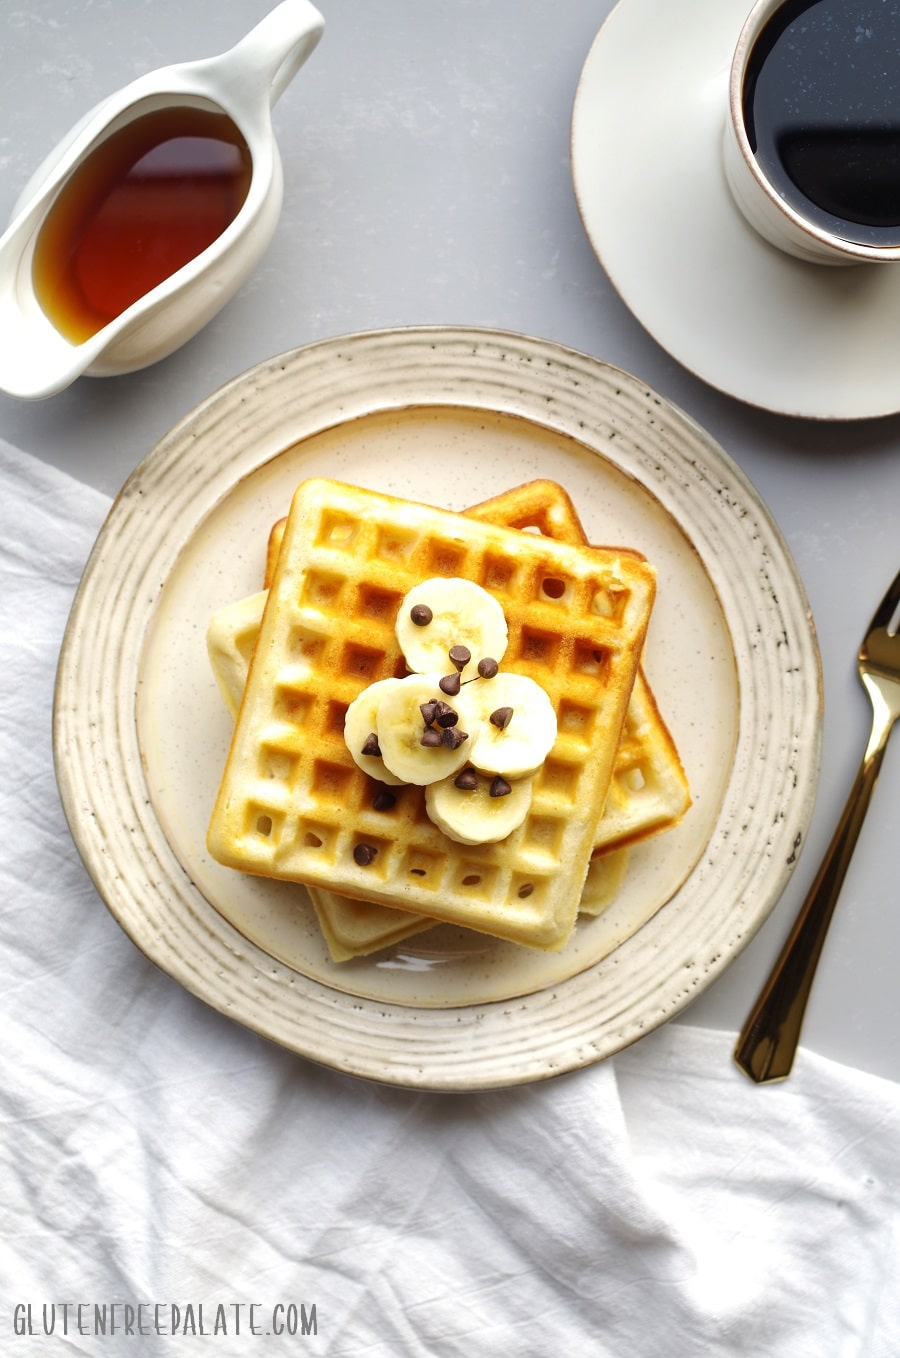 Gluten-Free Waffle Mix that is simple to make, a tried and true gluten-free waffle recipe, and can be made right away, or stored for future use.